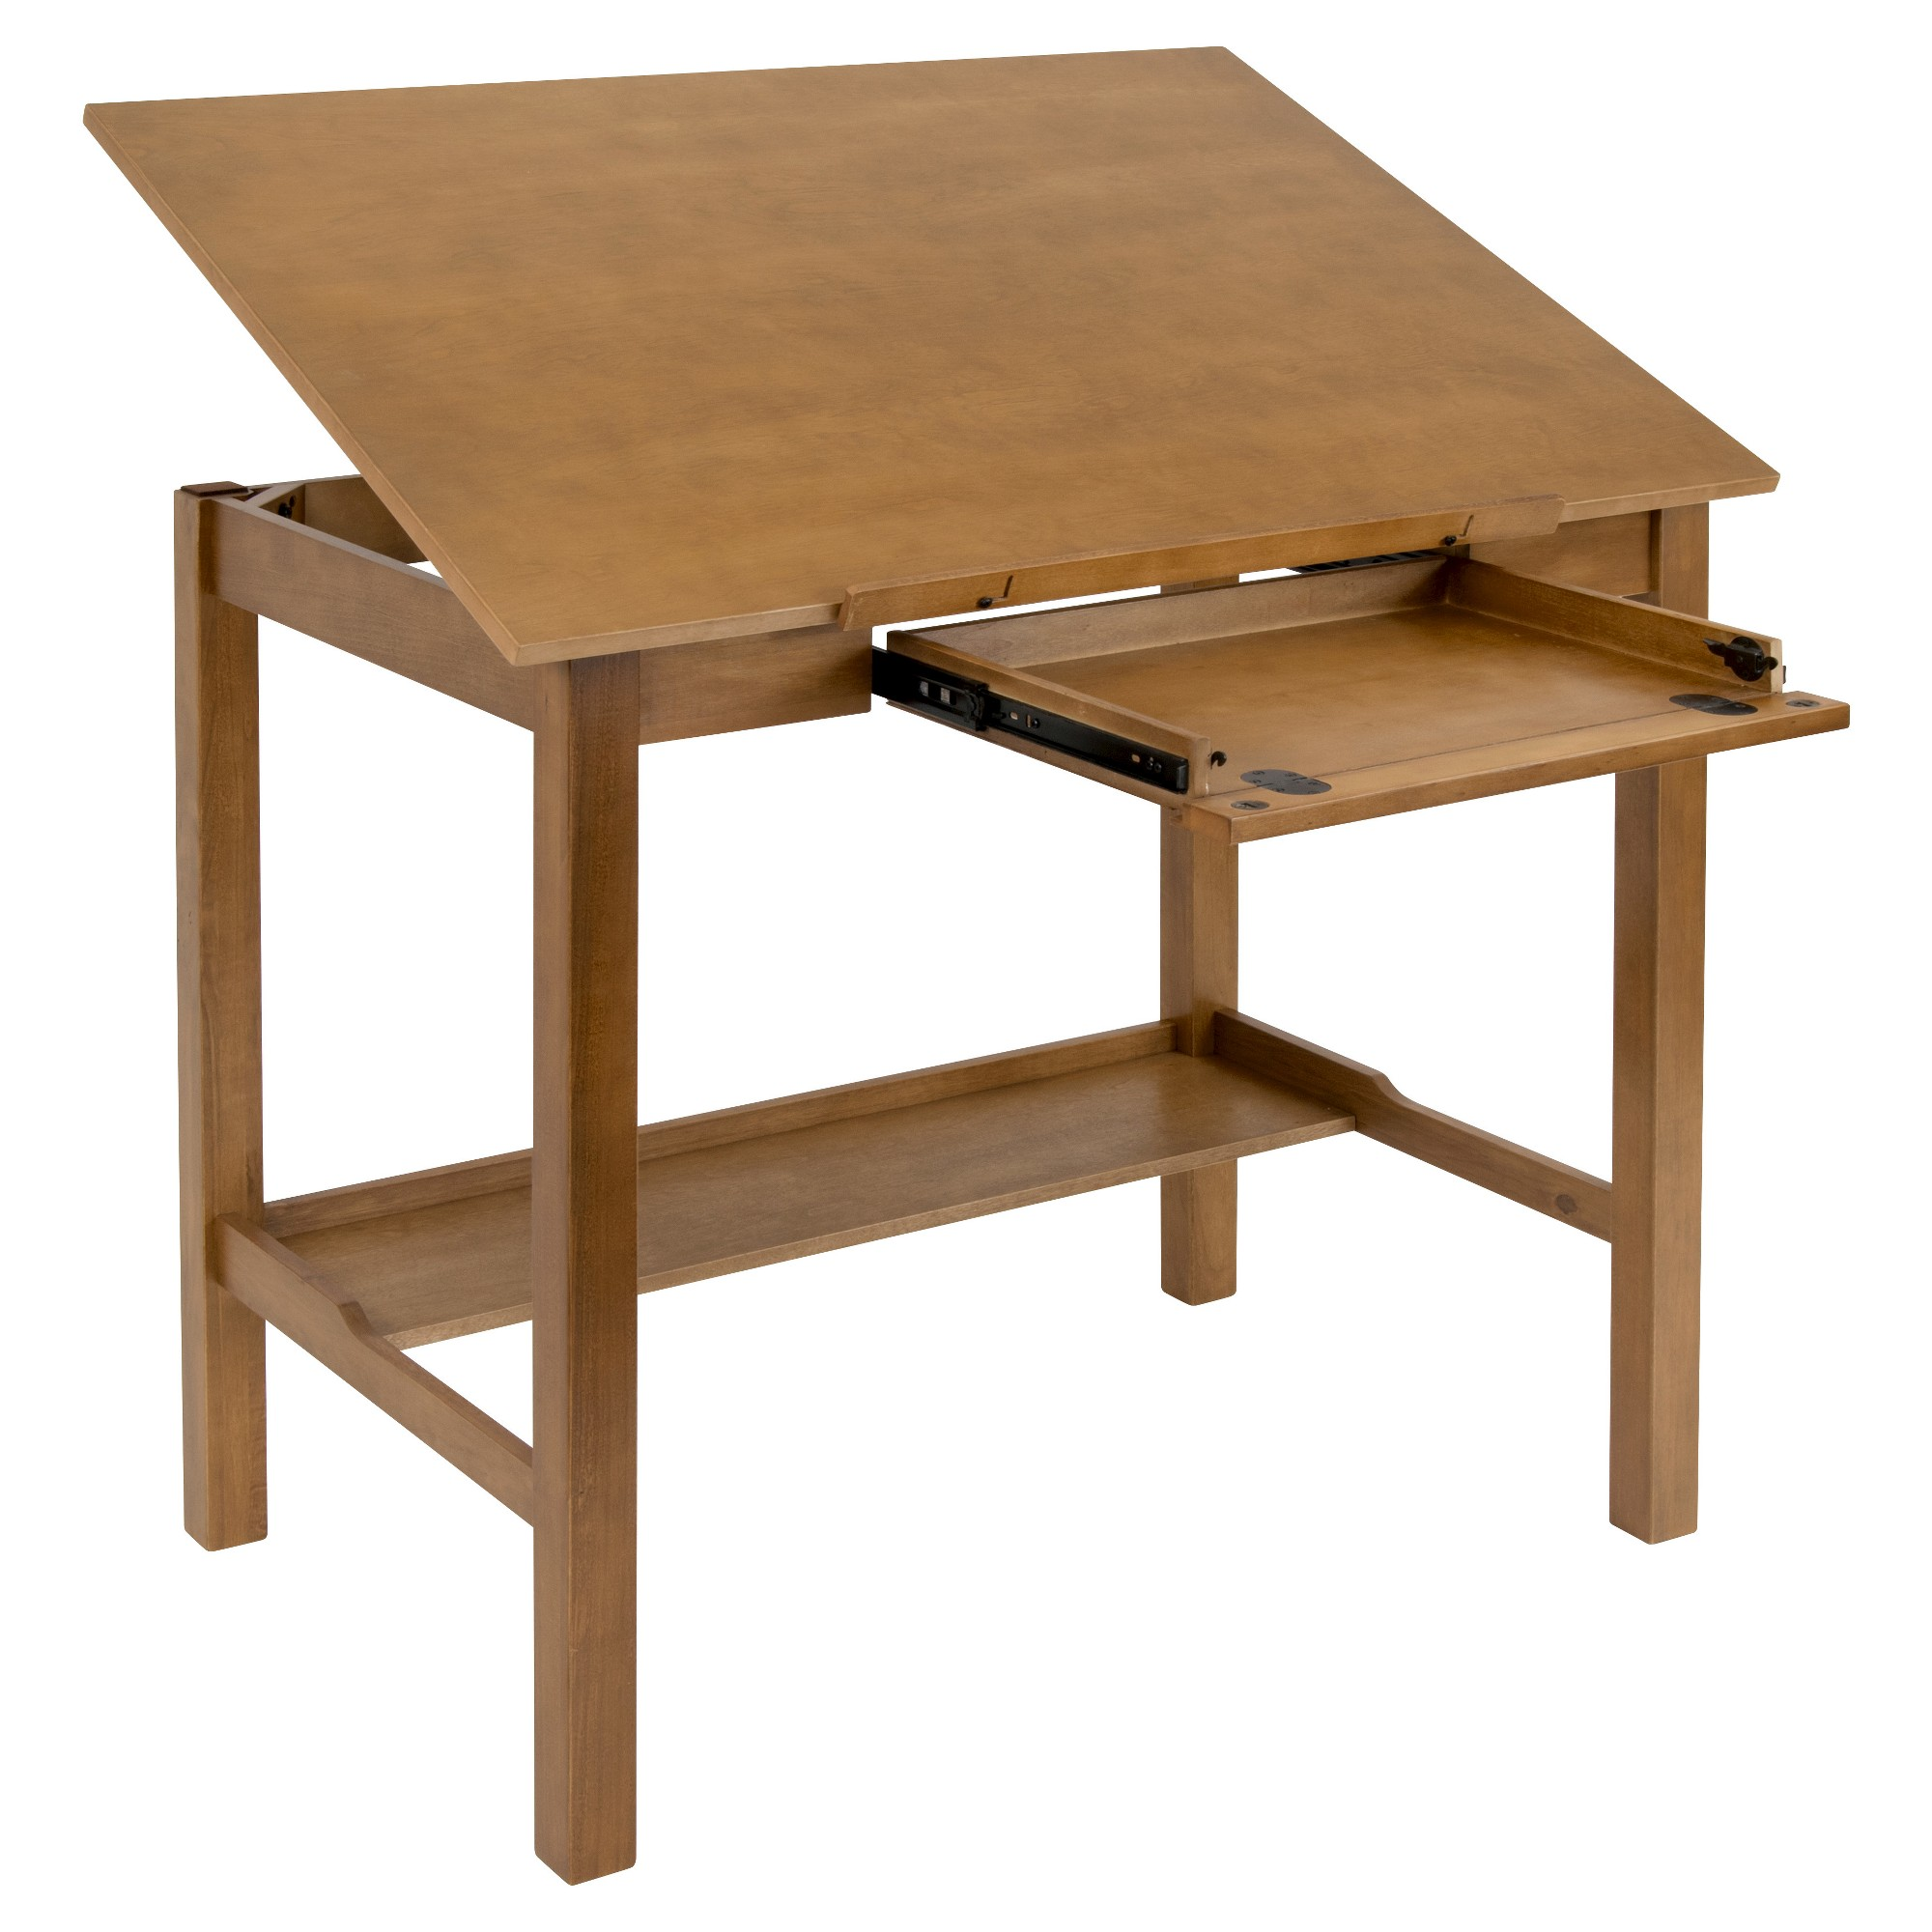 Drawing Table Wood Studio Designs Drawing Table Wood Table Rustic Drafting Table